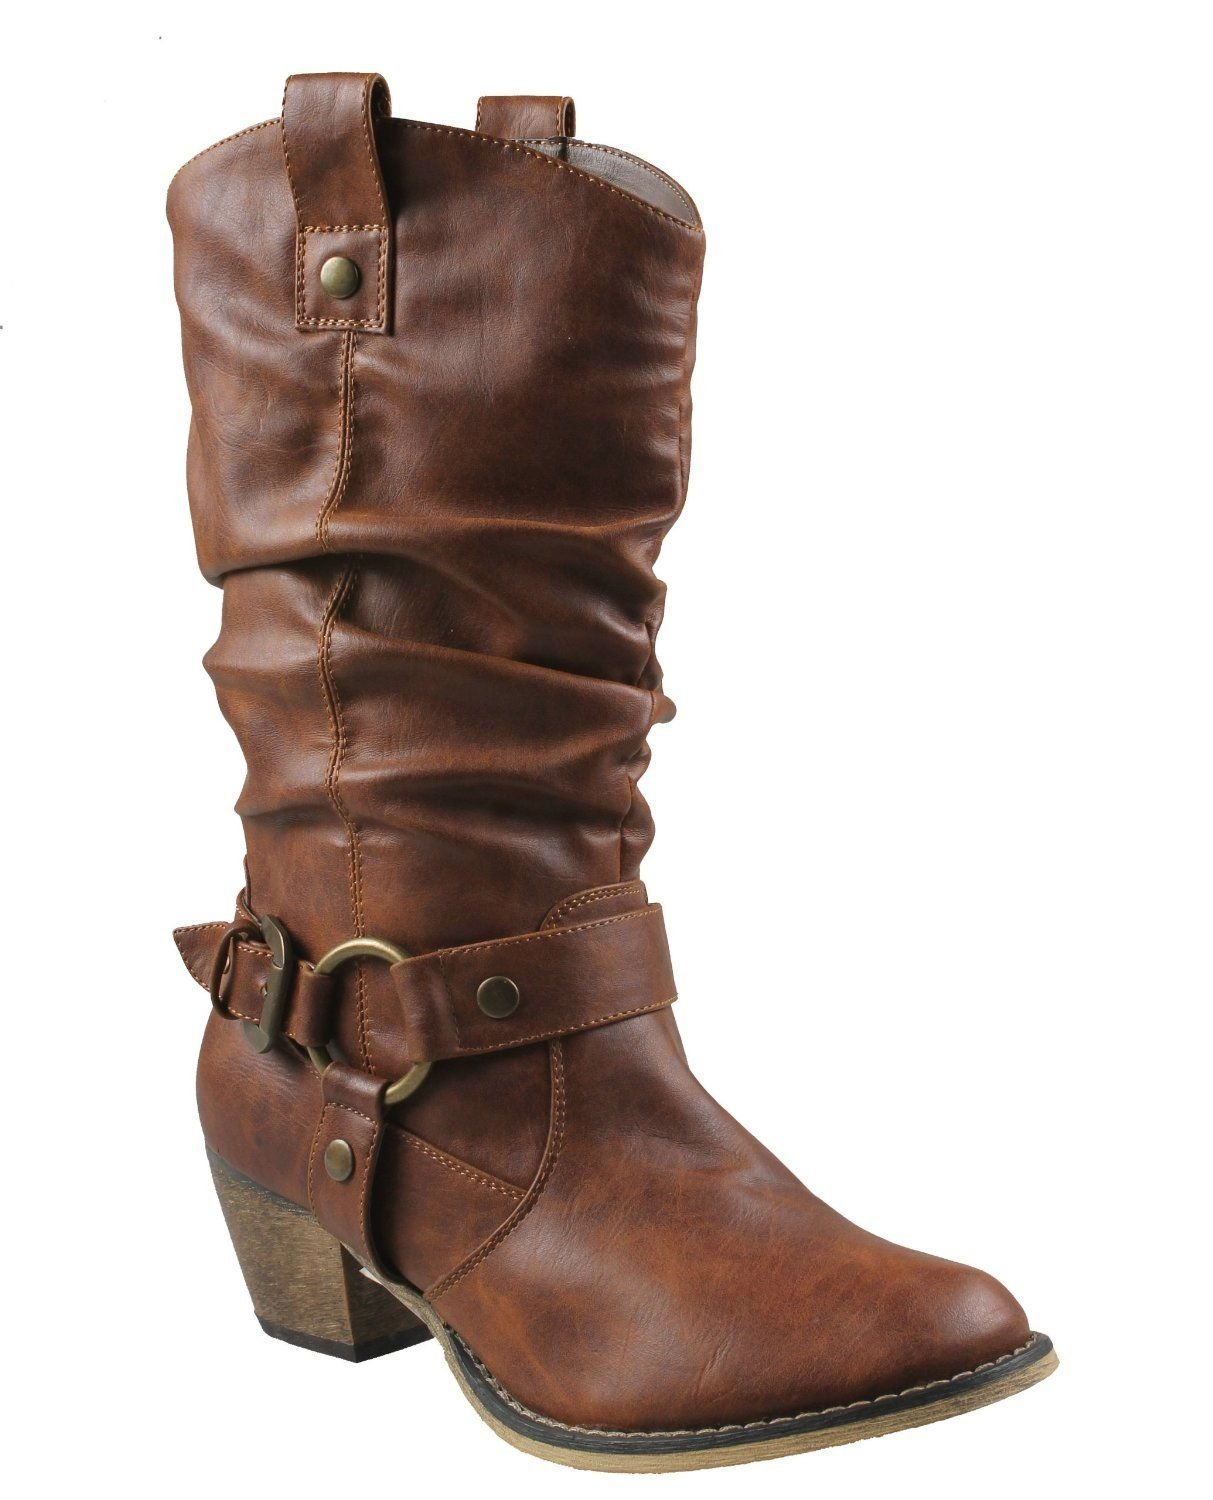 Women's Mid Calf Cowboy Boots Distressed Slouchy O-Ring Studded Pull on Block Heel Riding Boots Tan 7